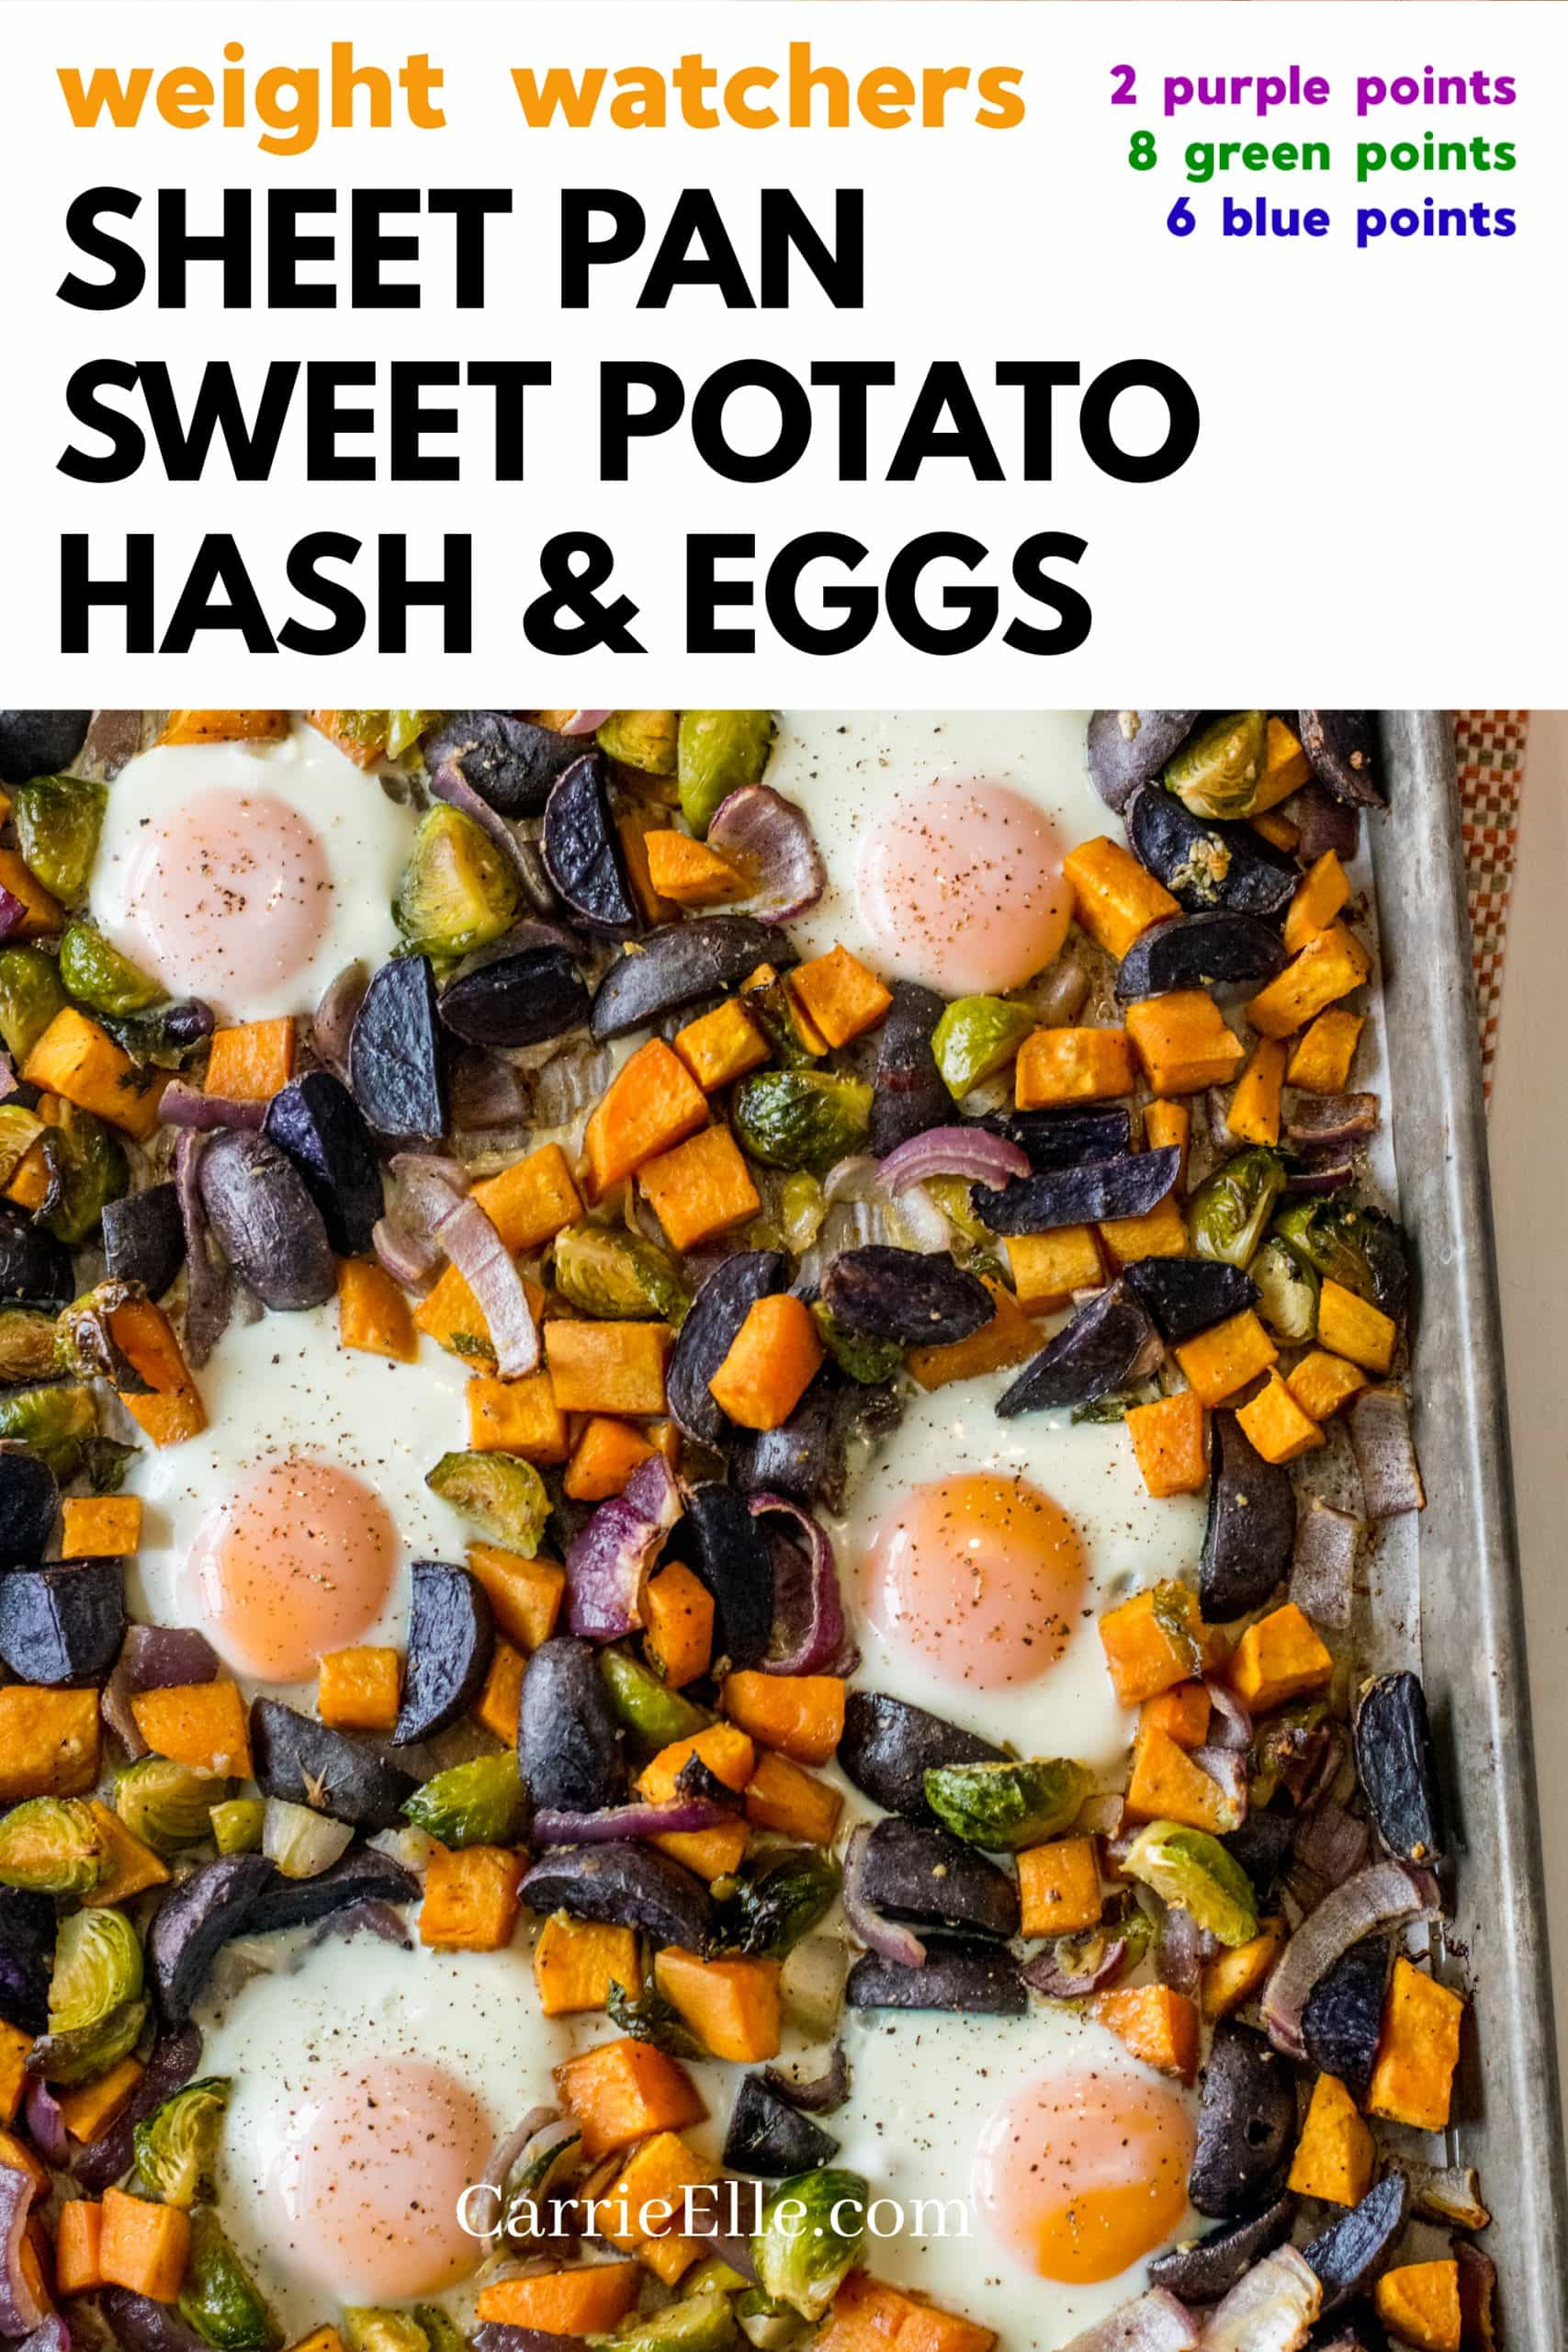 Weight Watchers Sheet Pan Breakfast Hash CarrieElle.com